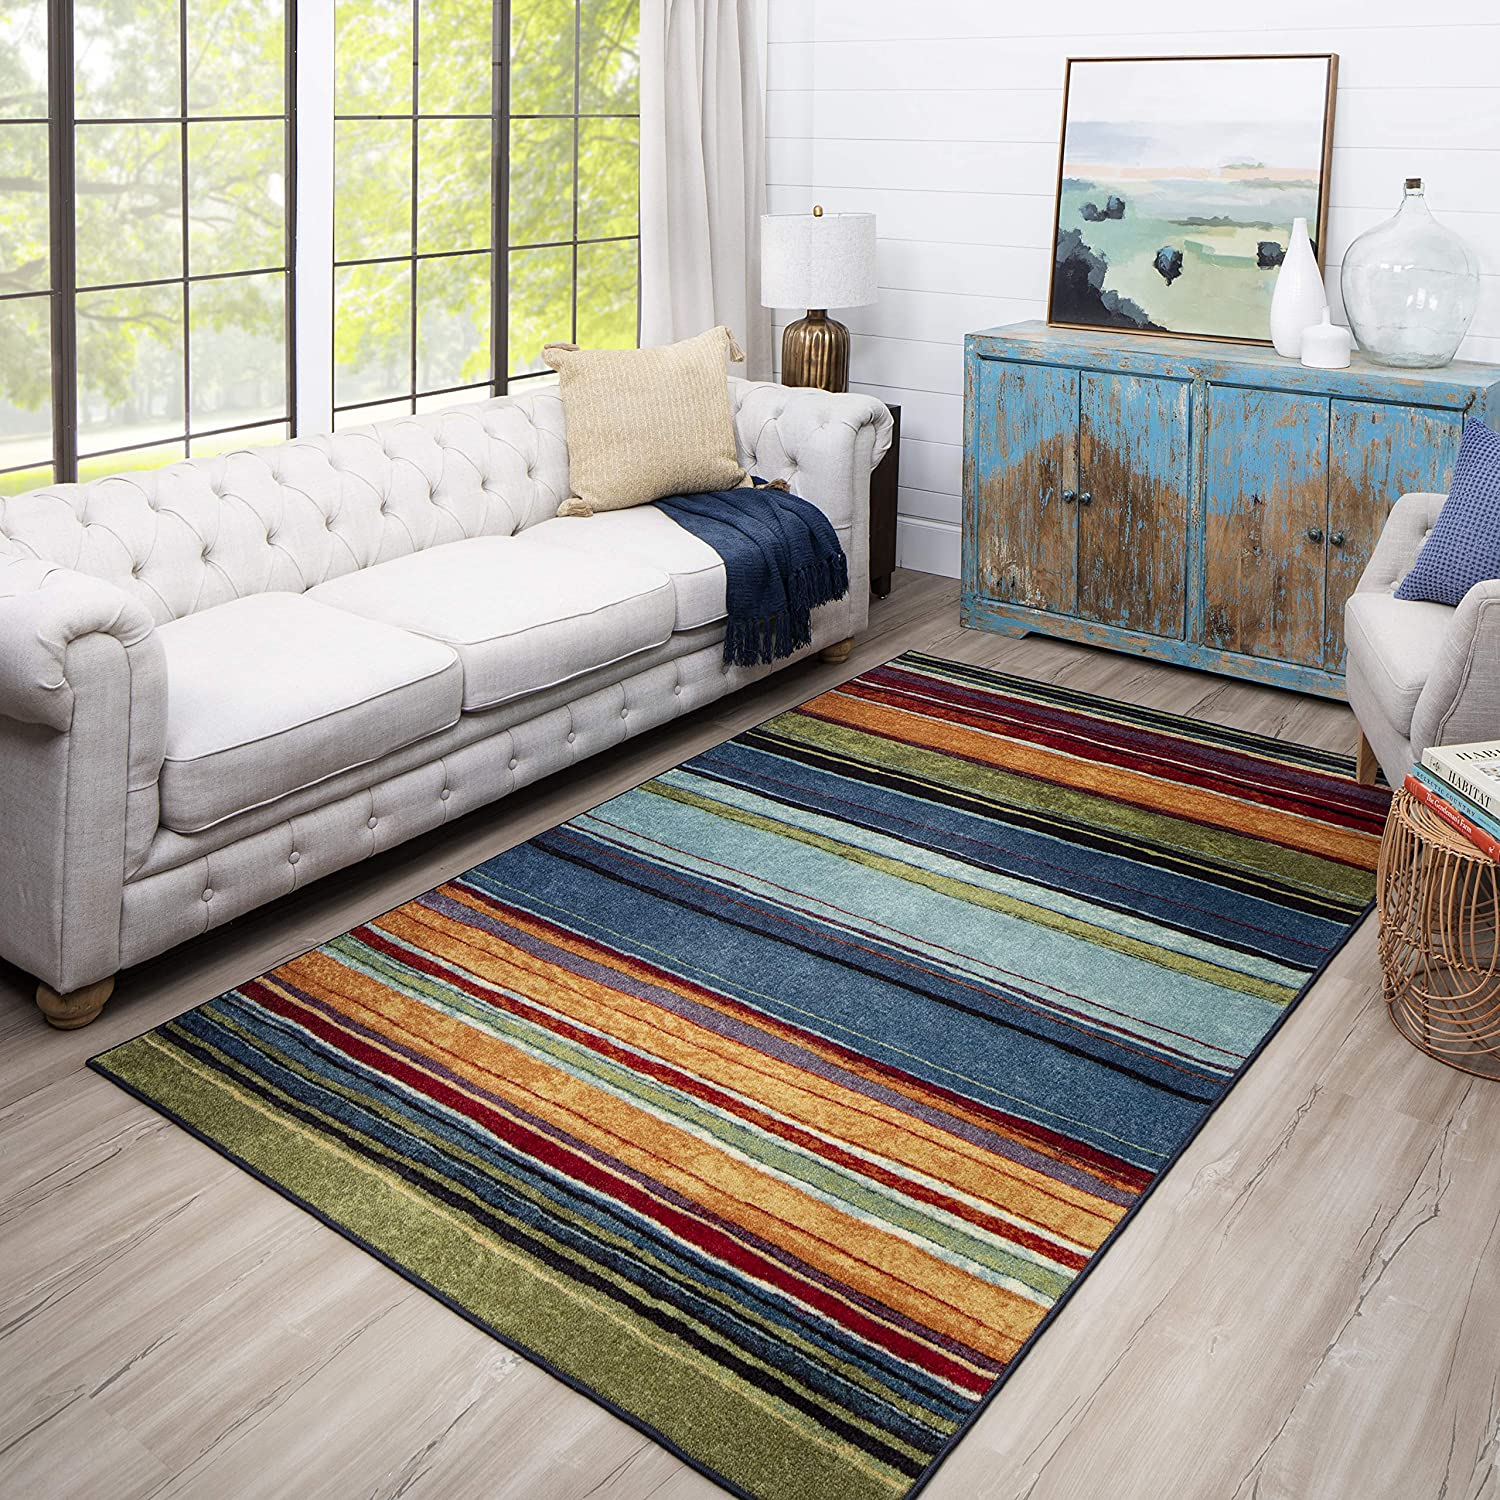 Mohawk Home New Wave Rainbow Stripe Accent Area Rug 2 6 X3 10 Multi Home Kitchen